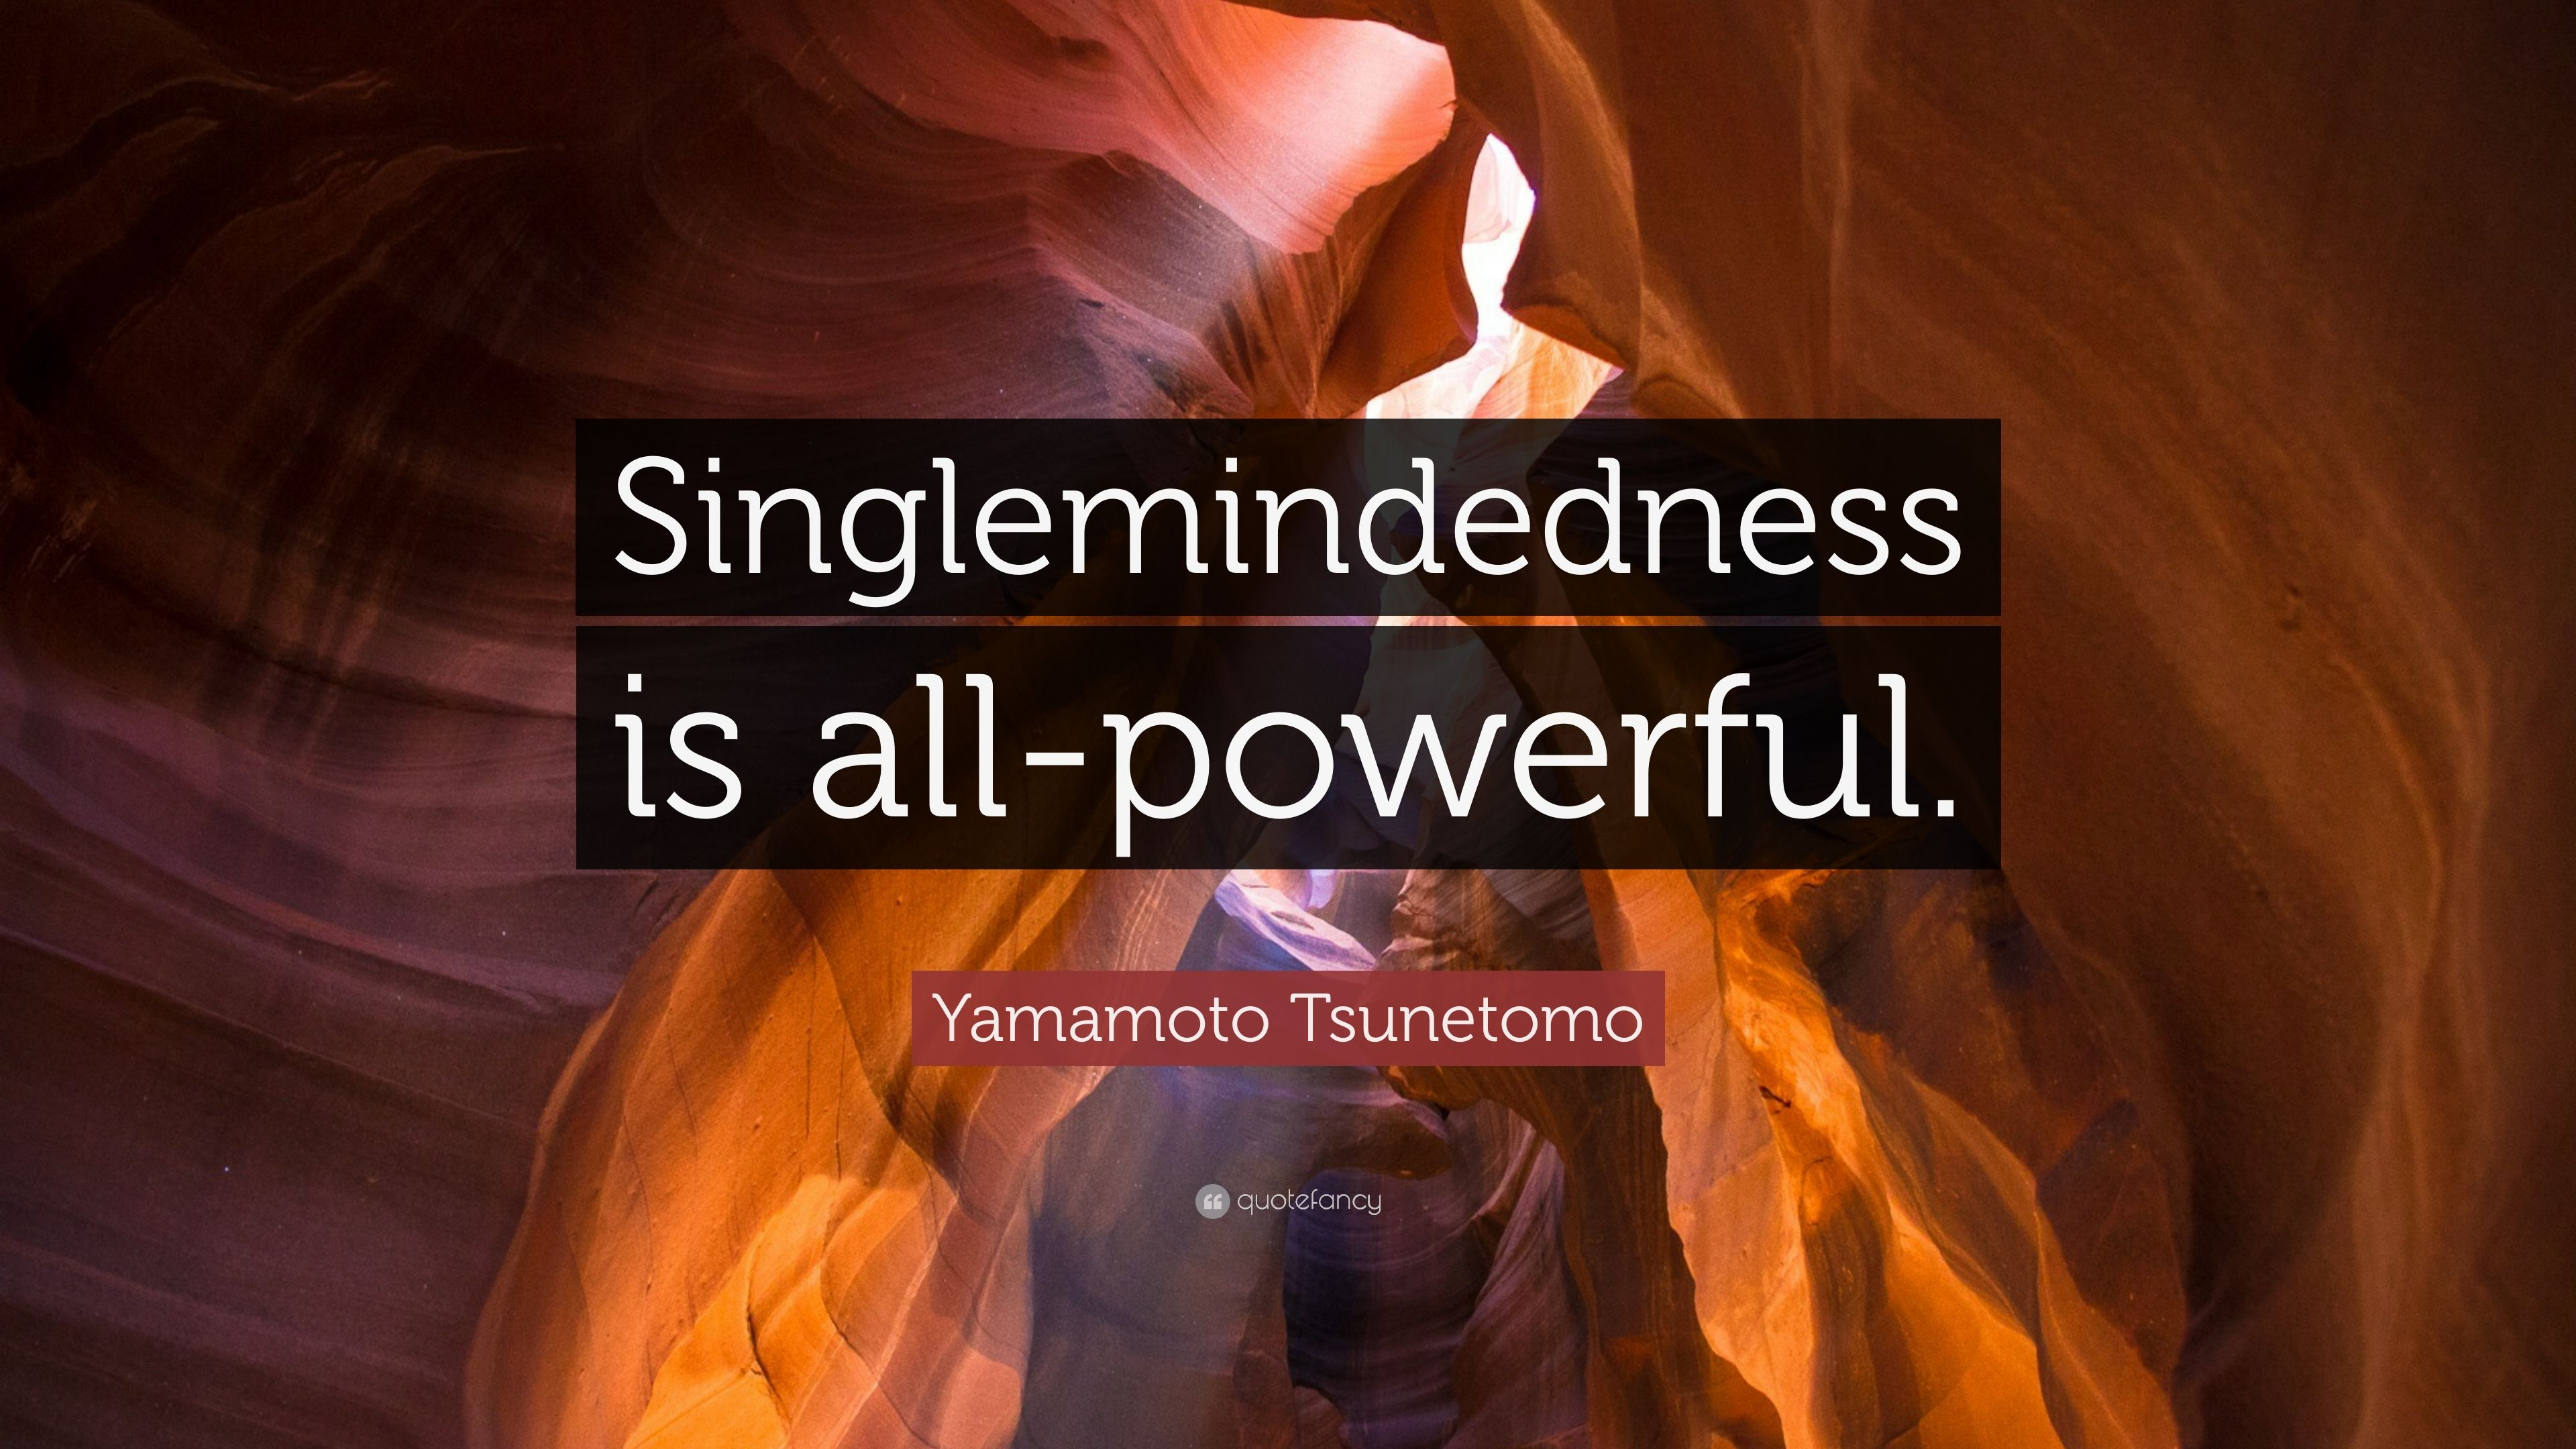 Single mindedness is all powerful